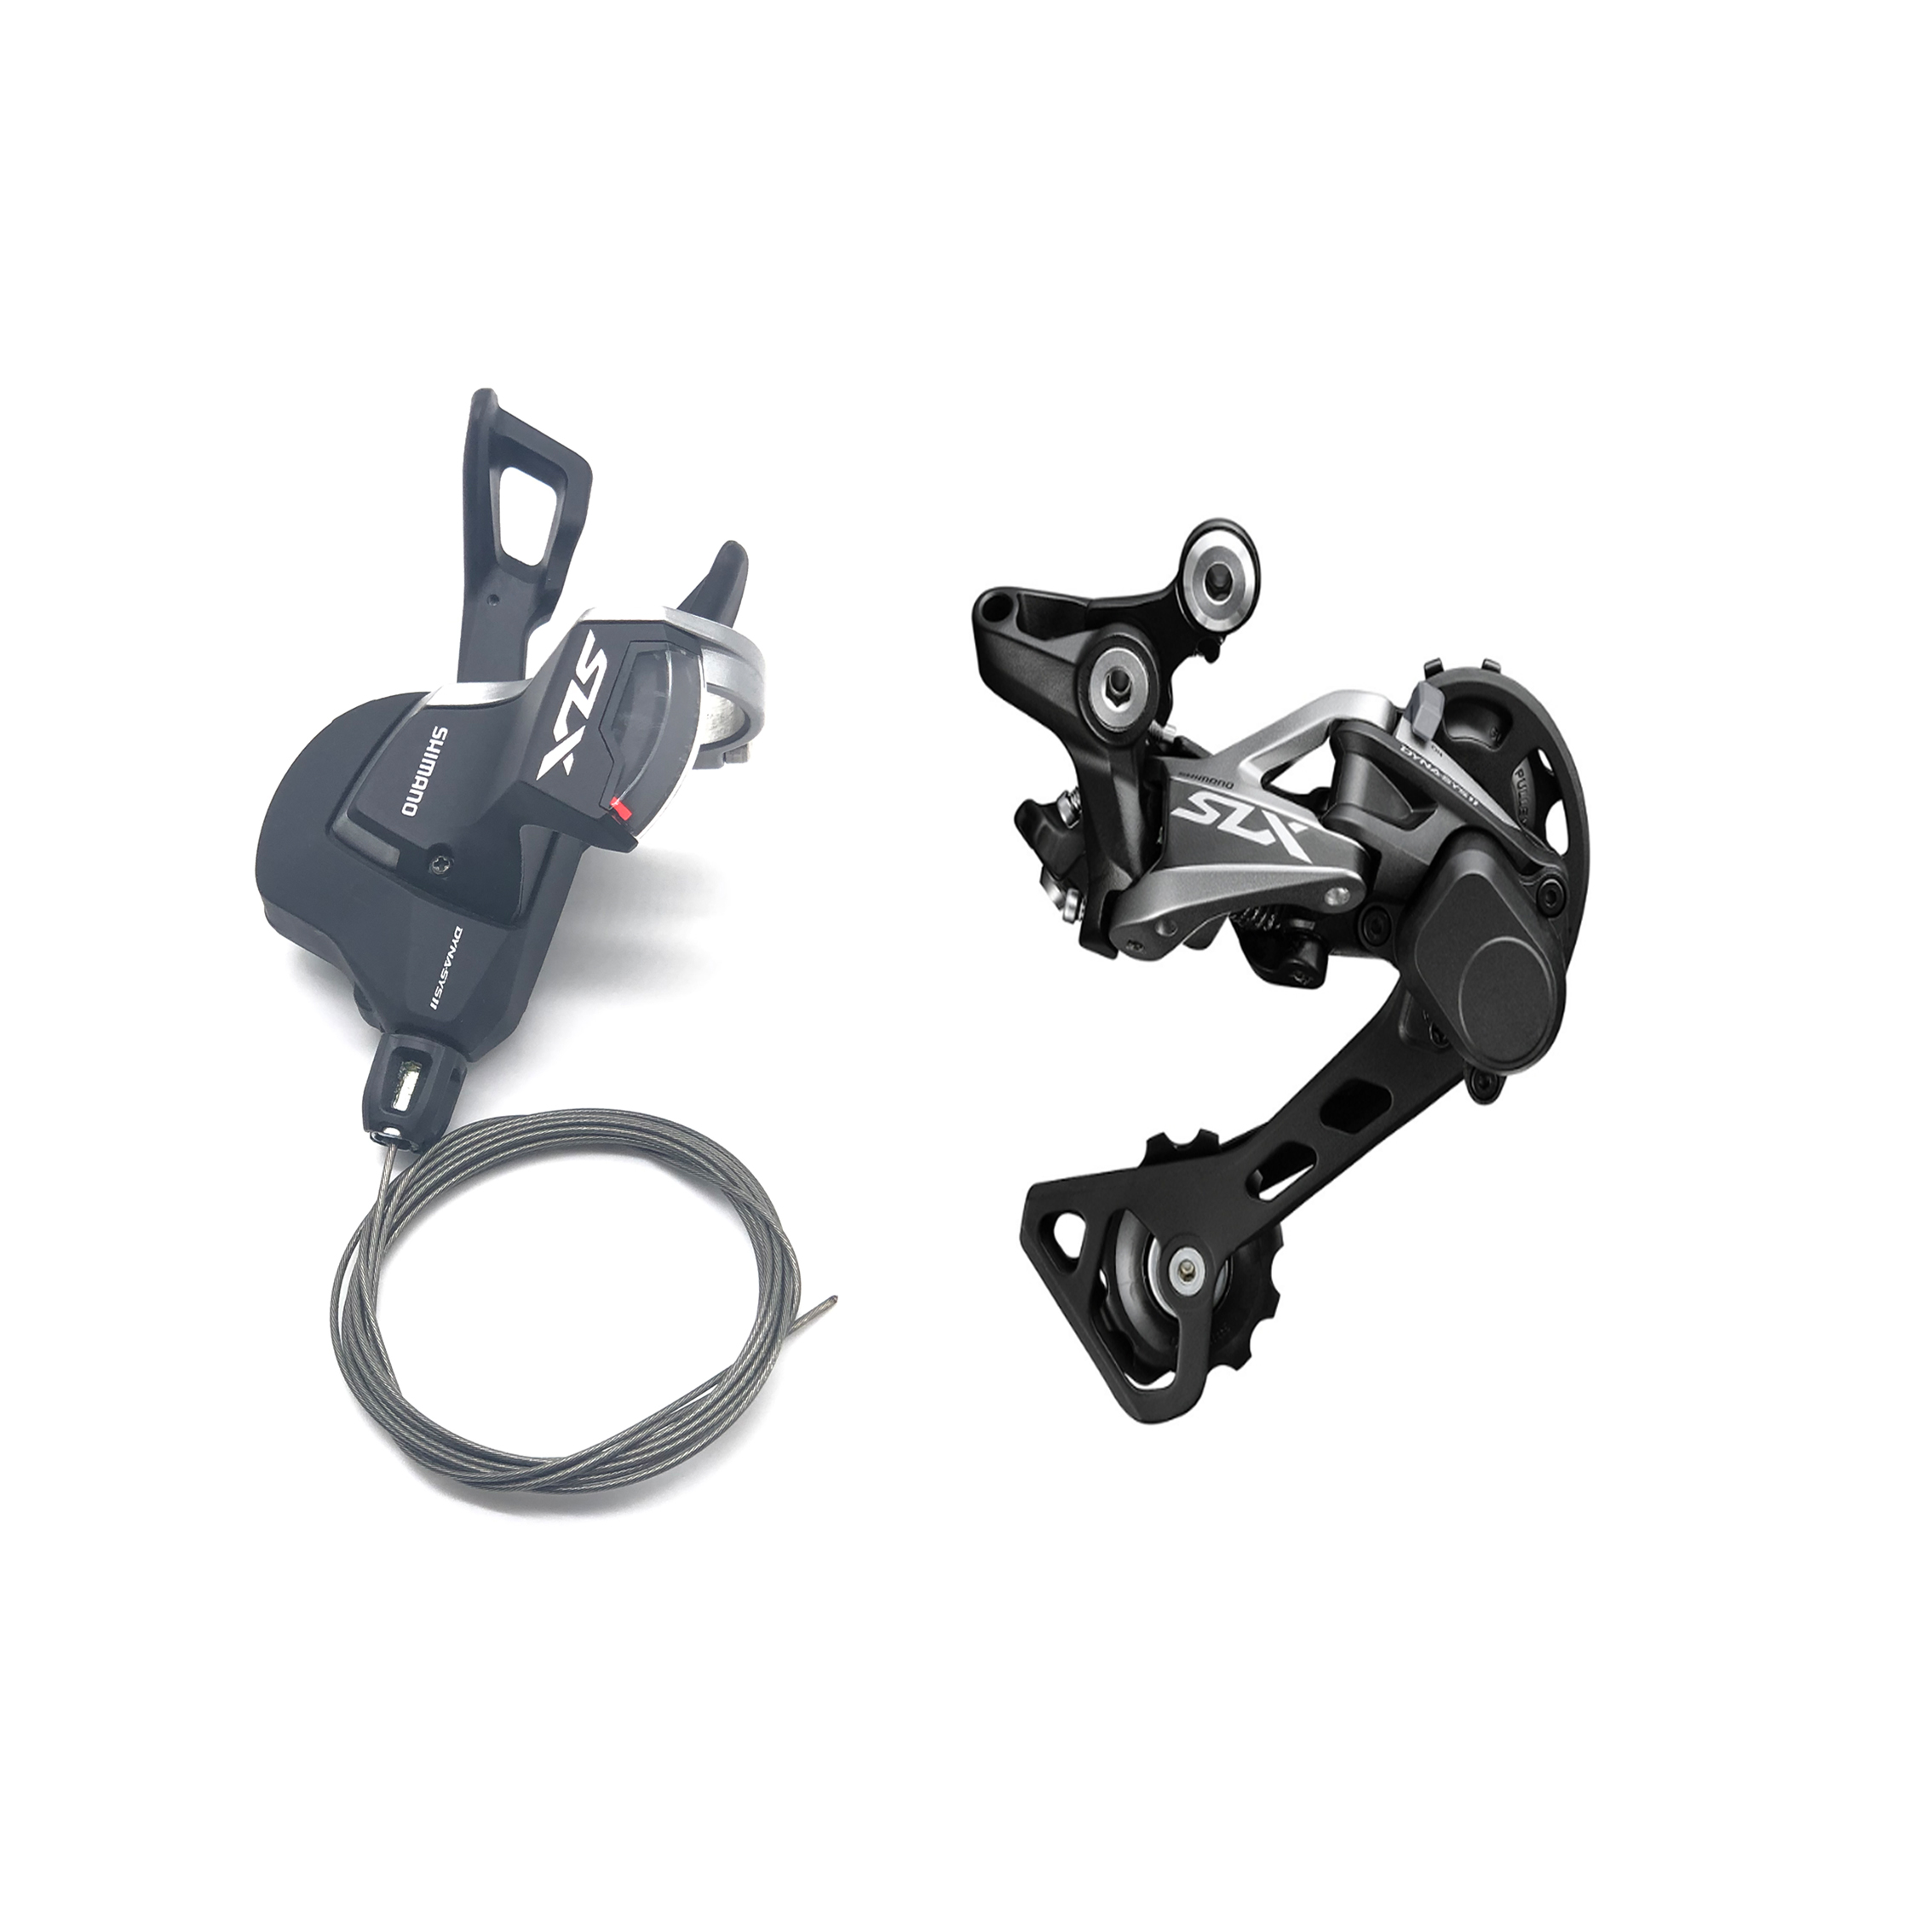 Indoor Spin Cycling 6 Degree Float Cycling Pedals Cleat for SPD-SL Pedals SM-SH11 Cleats for Road Bike Mountain Bike Farbetter Bike Cleats+Cleat Covers Set